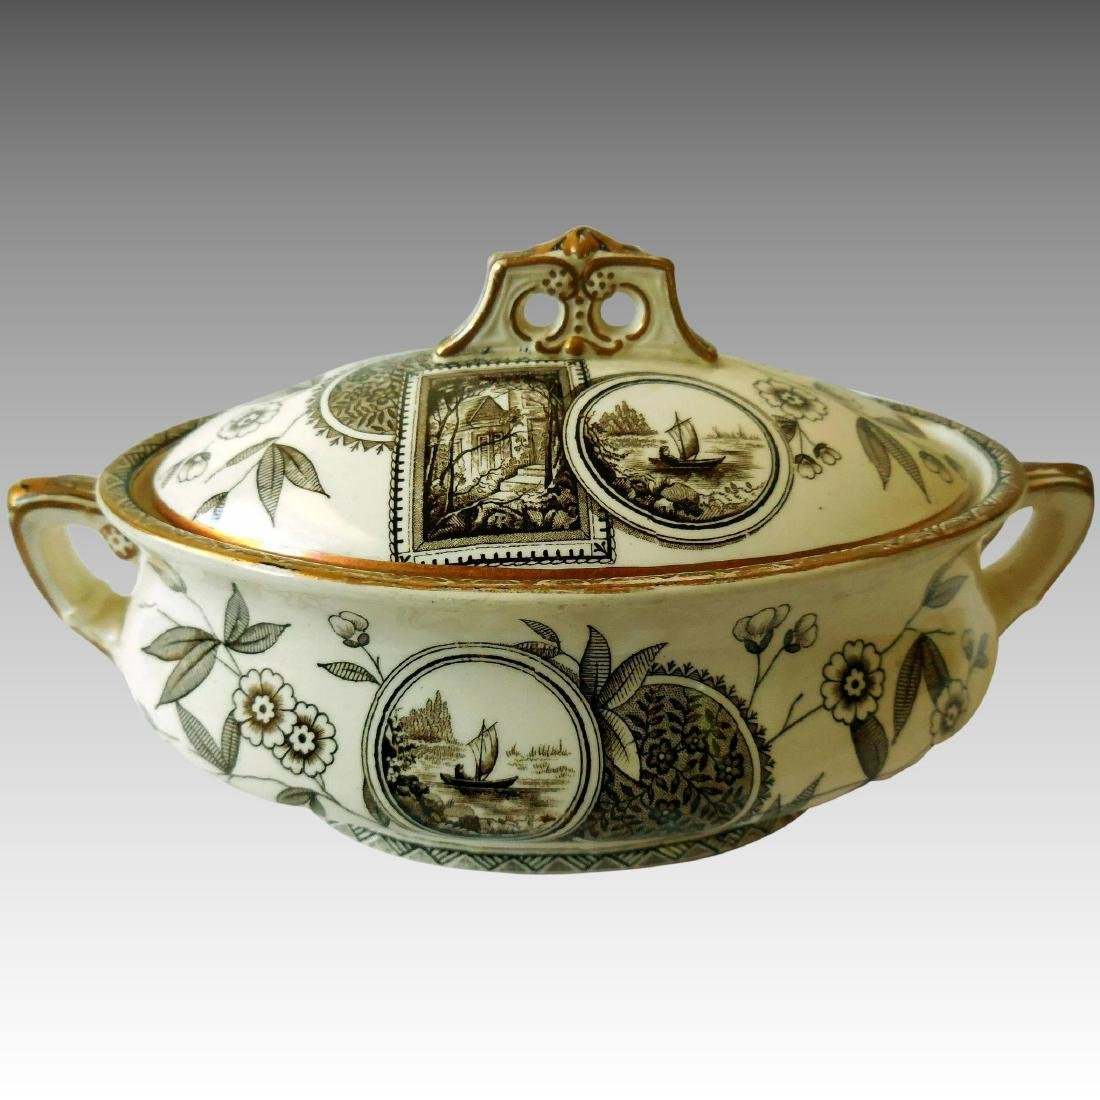 Early English Aesthetic Brown Transfer Tureen, 1912